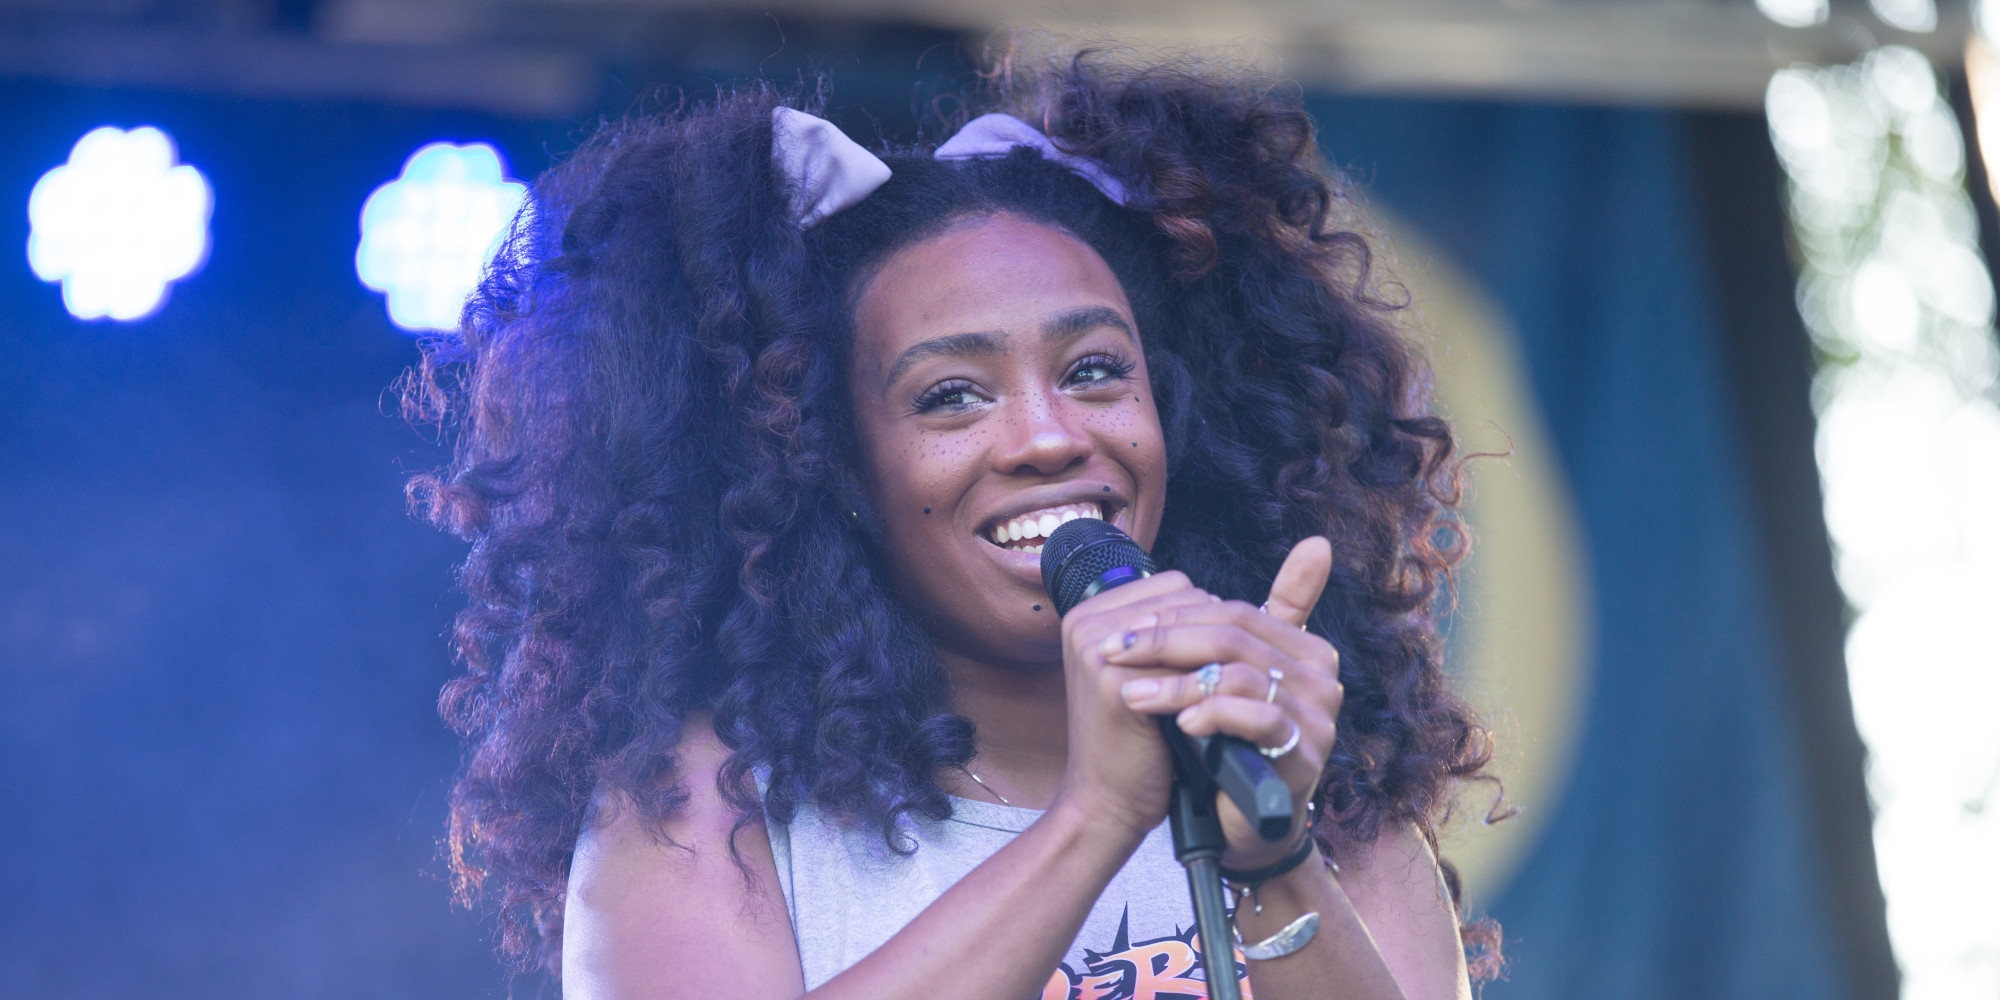 You Probably Don't Know Rising R&B Star SZA Yet, But You Will